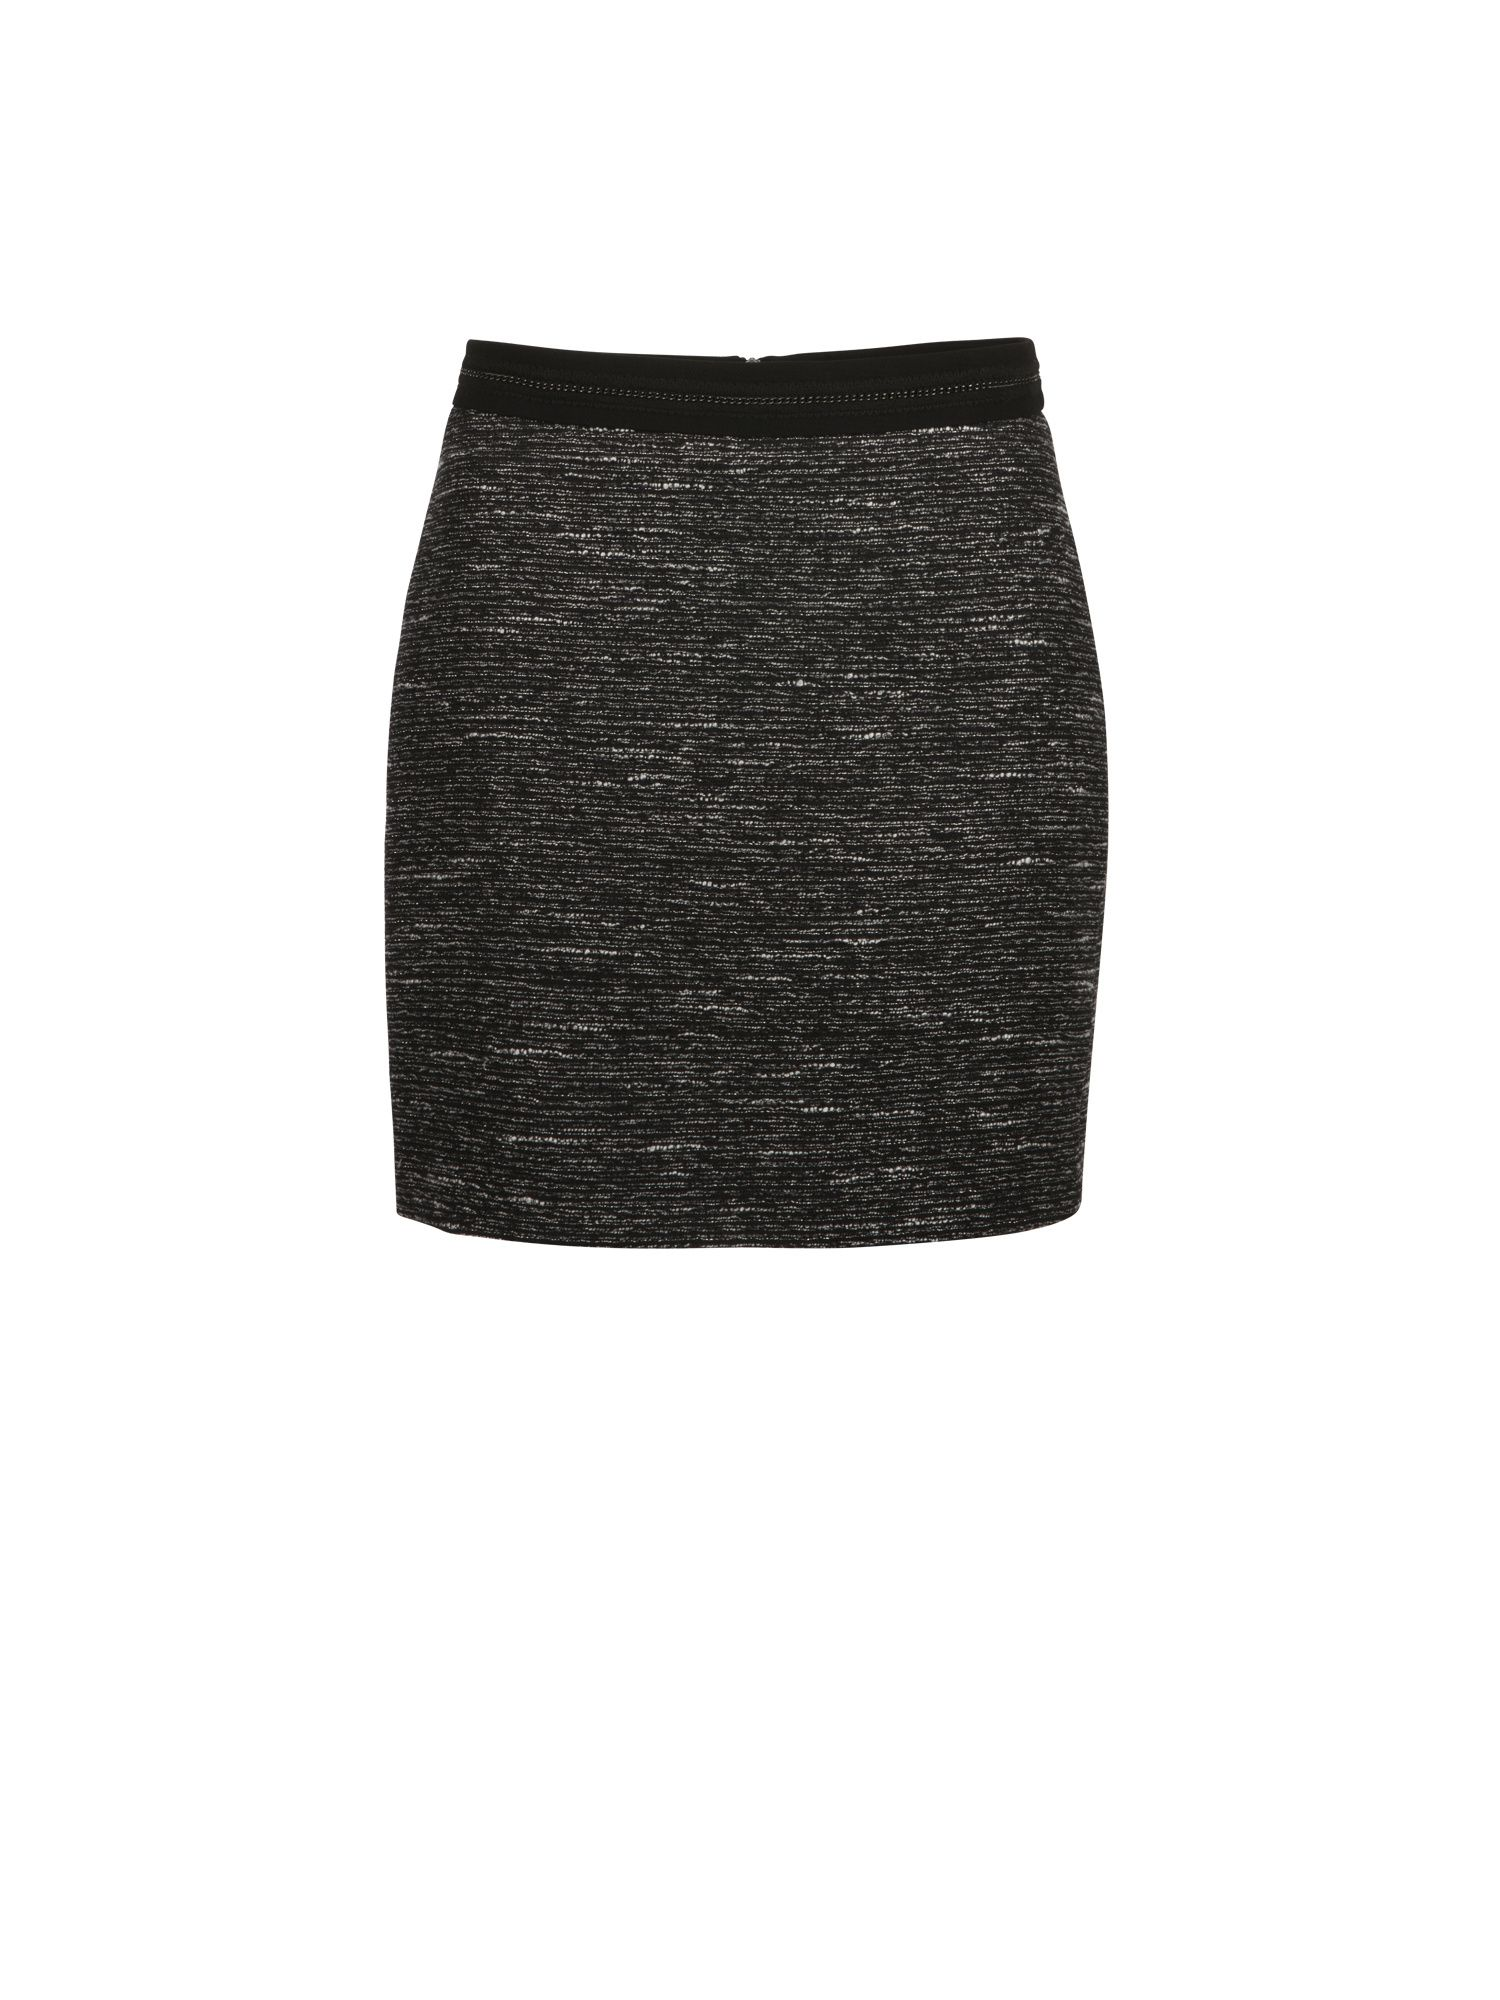 Morgan Jacquard Textured Knit Miniskirt, Black